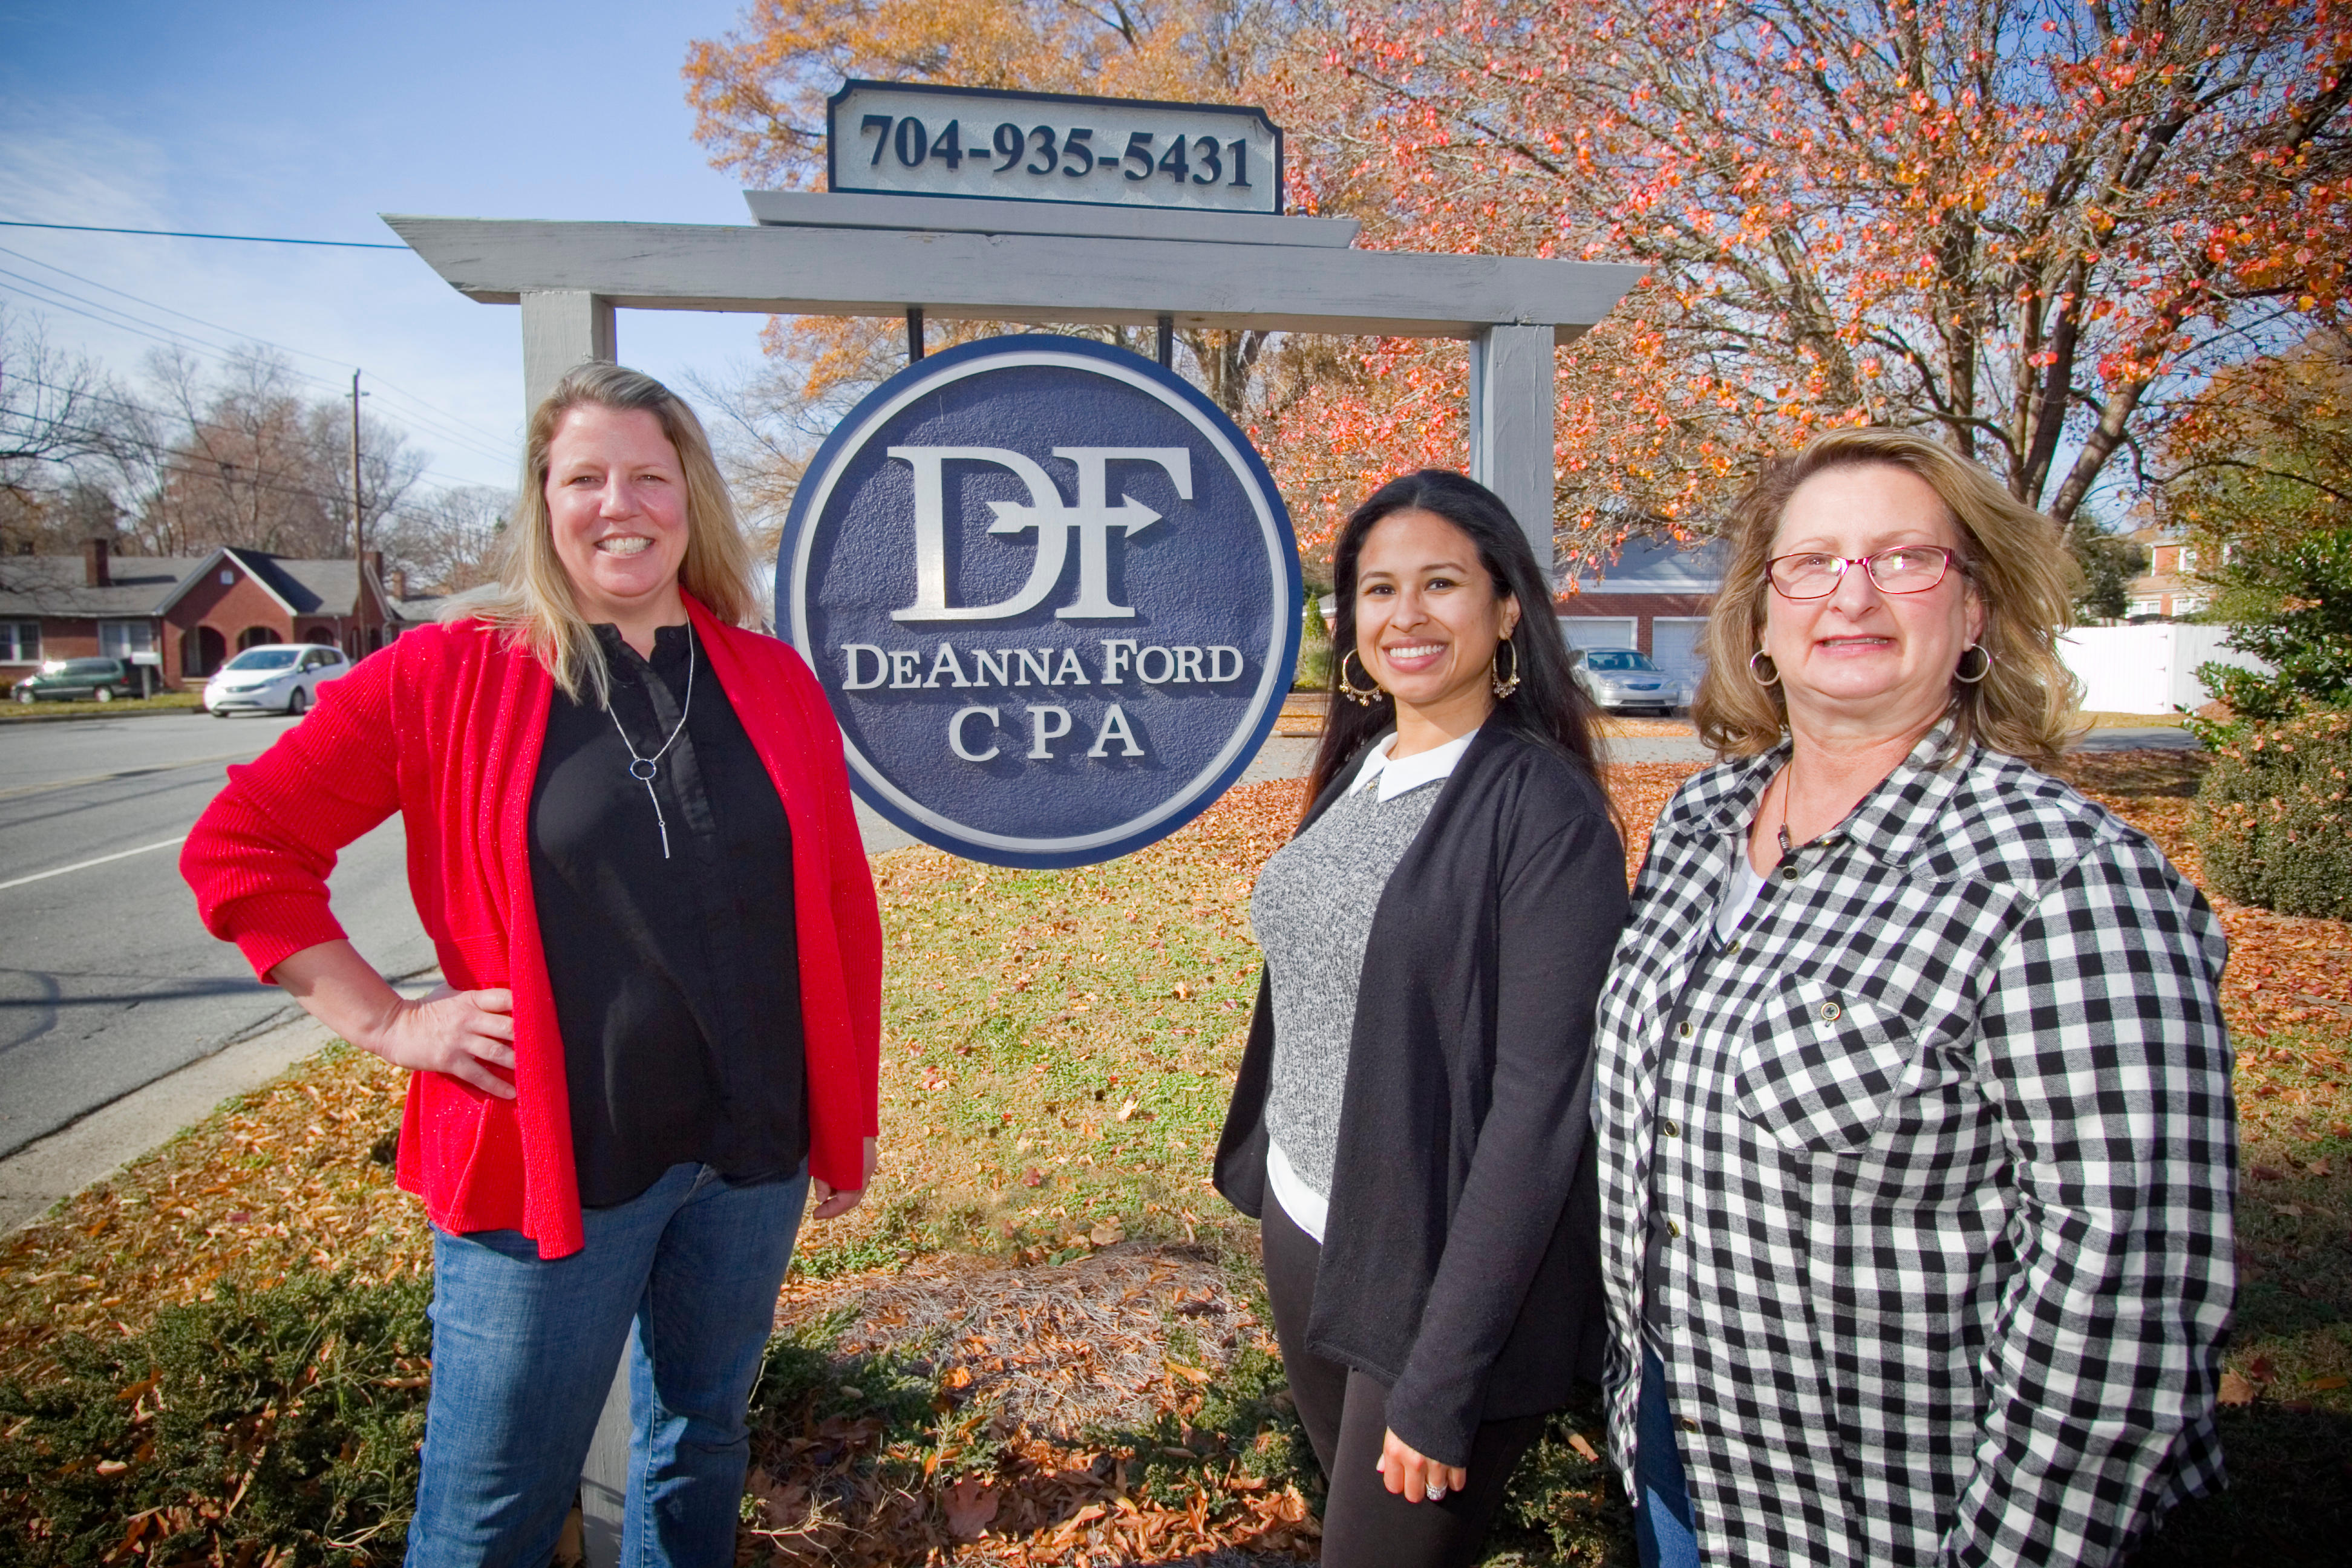 DeAnna Ford, CPA image 2